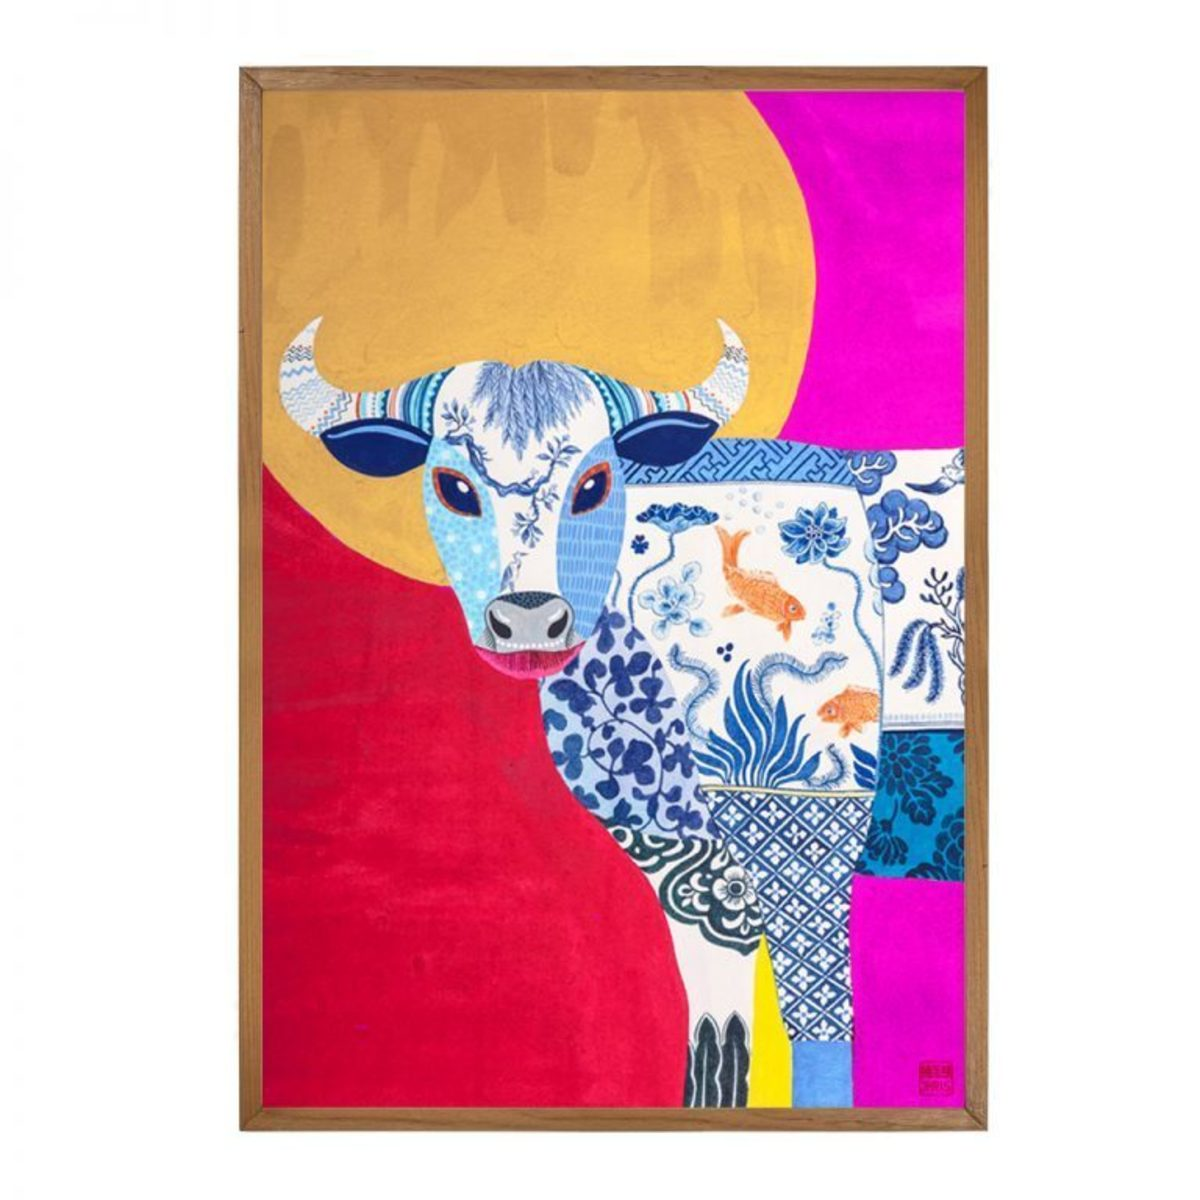 OX - Limited Edition Print of 25 (Unframed)